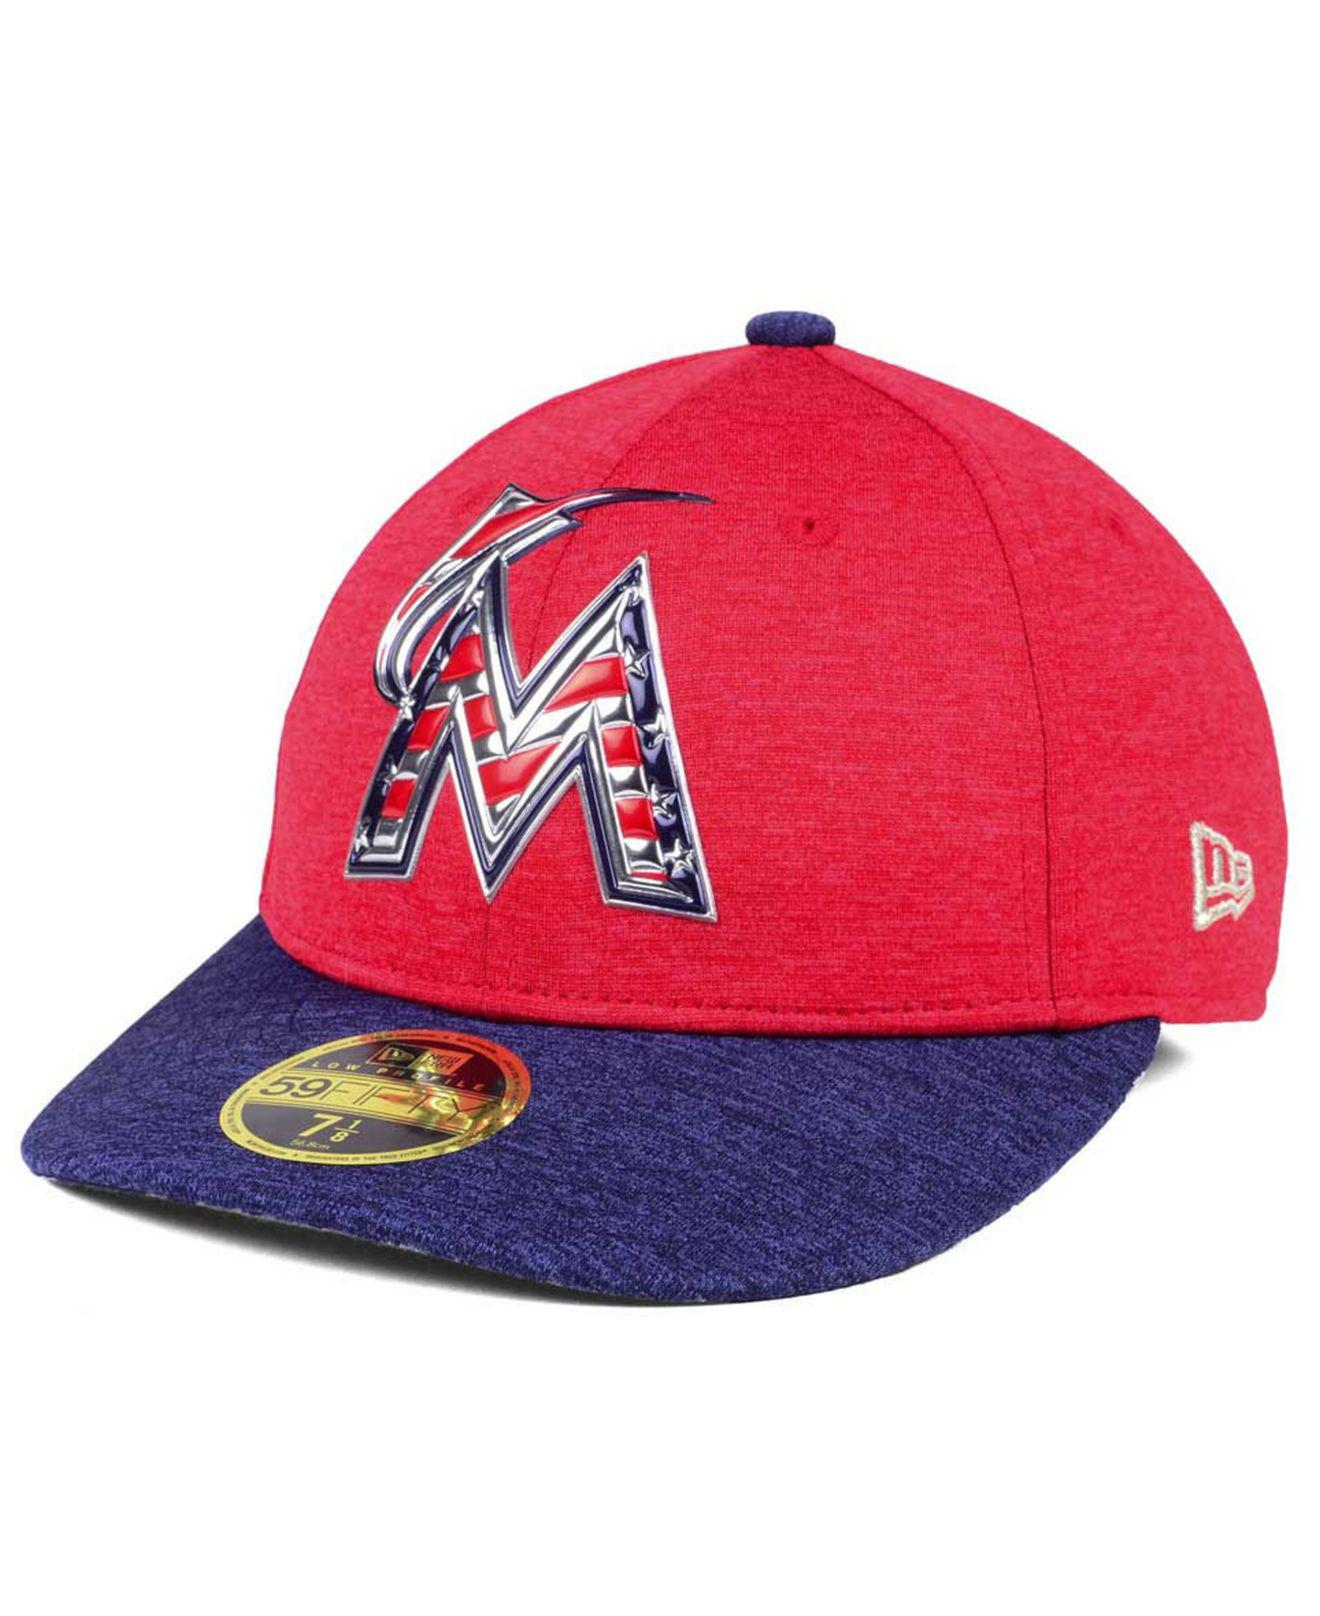 68ea63bba7d ... spain ktz. mens red low profile stars stripes 59fifty cap a3282 f0d1f